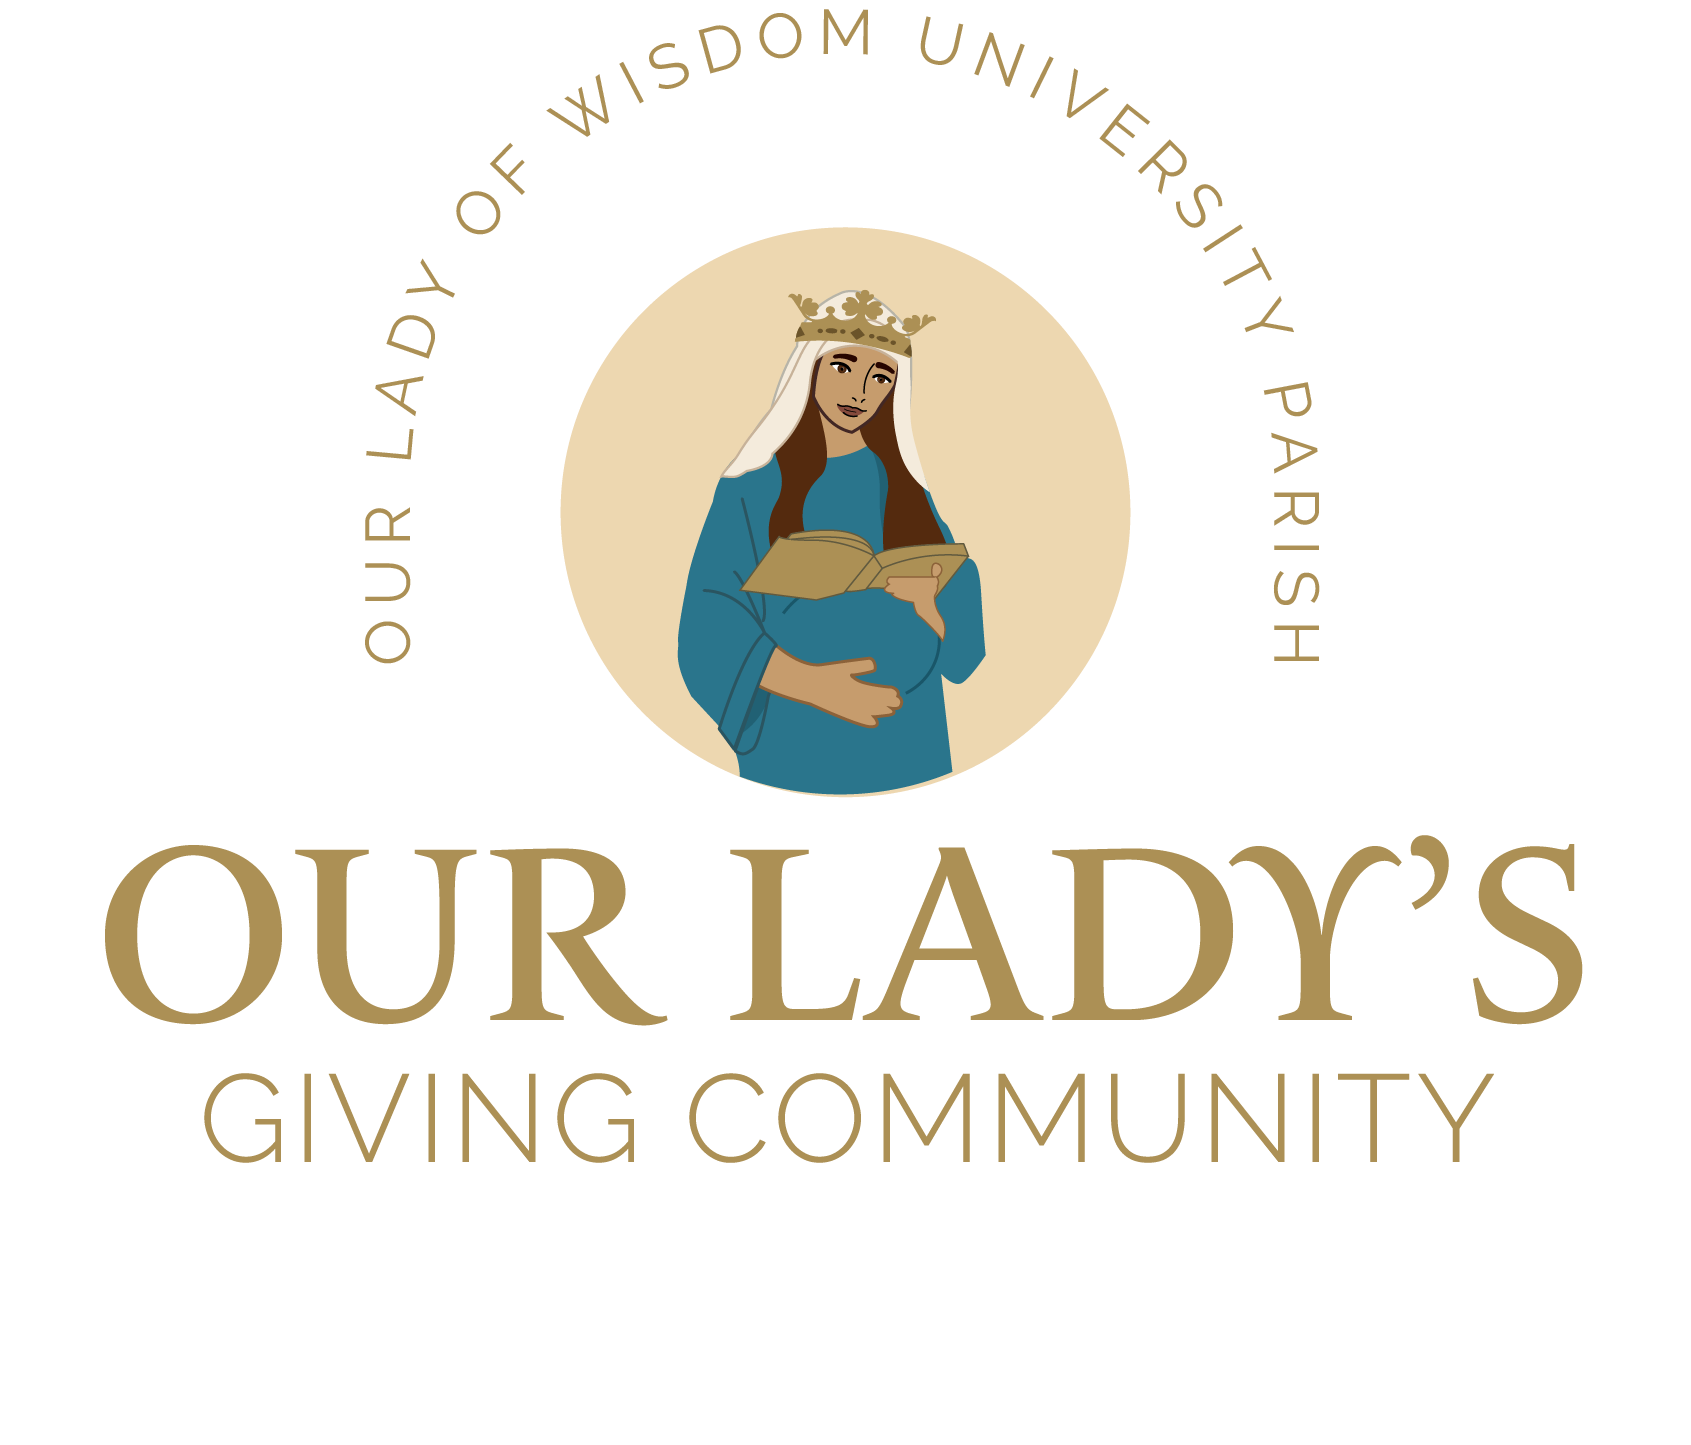 Our Lady's Giving Community